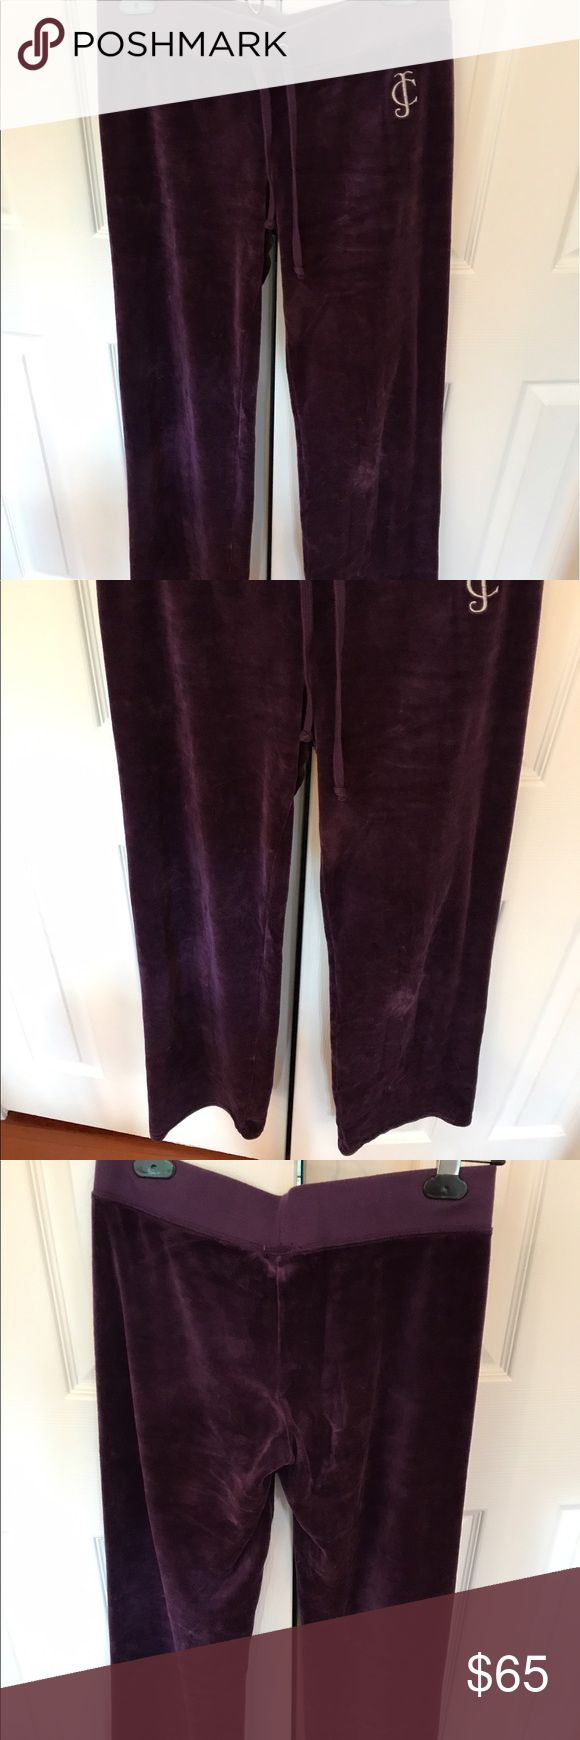 Juicy couture veloure track pants Velvet purple track pants with drawstring and bootcut leg. Rarely worn in great condition Juicy Couture Pants Boot Cut & Flare